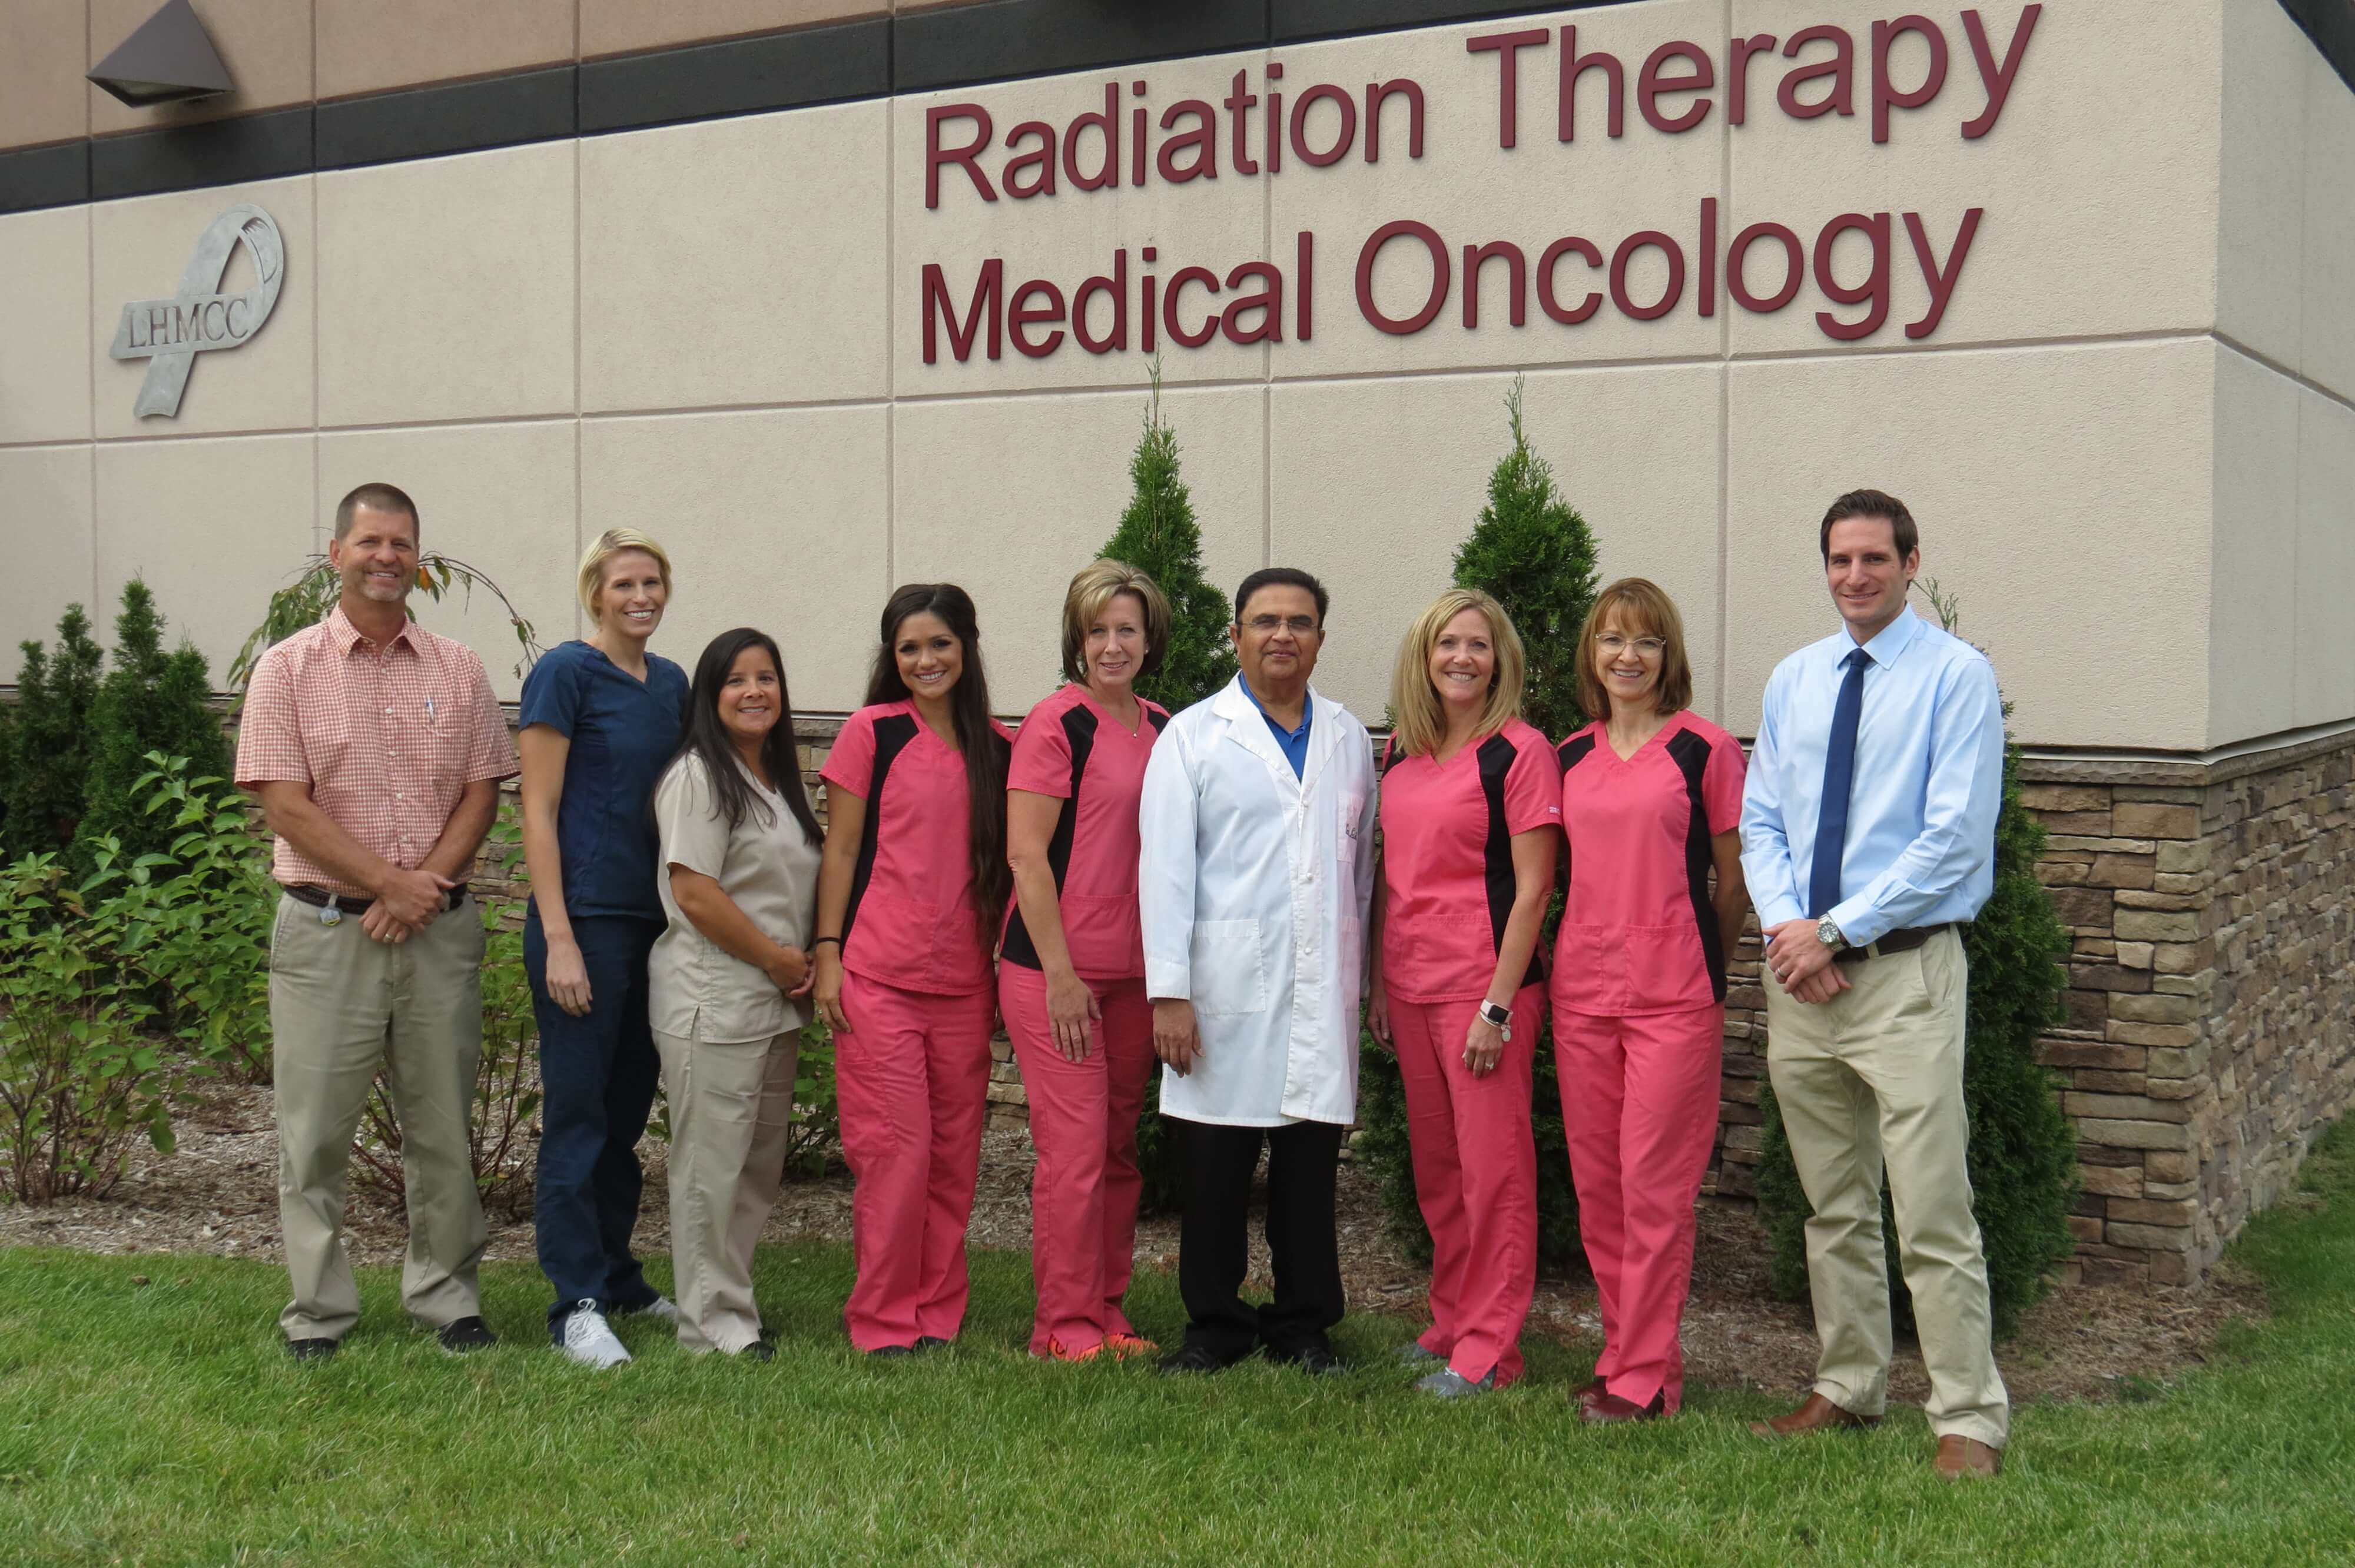 Radiation therapy staff